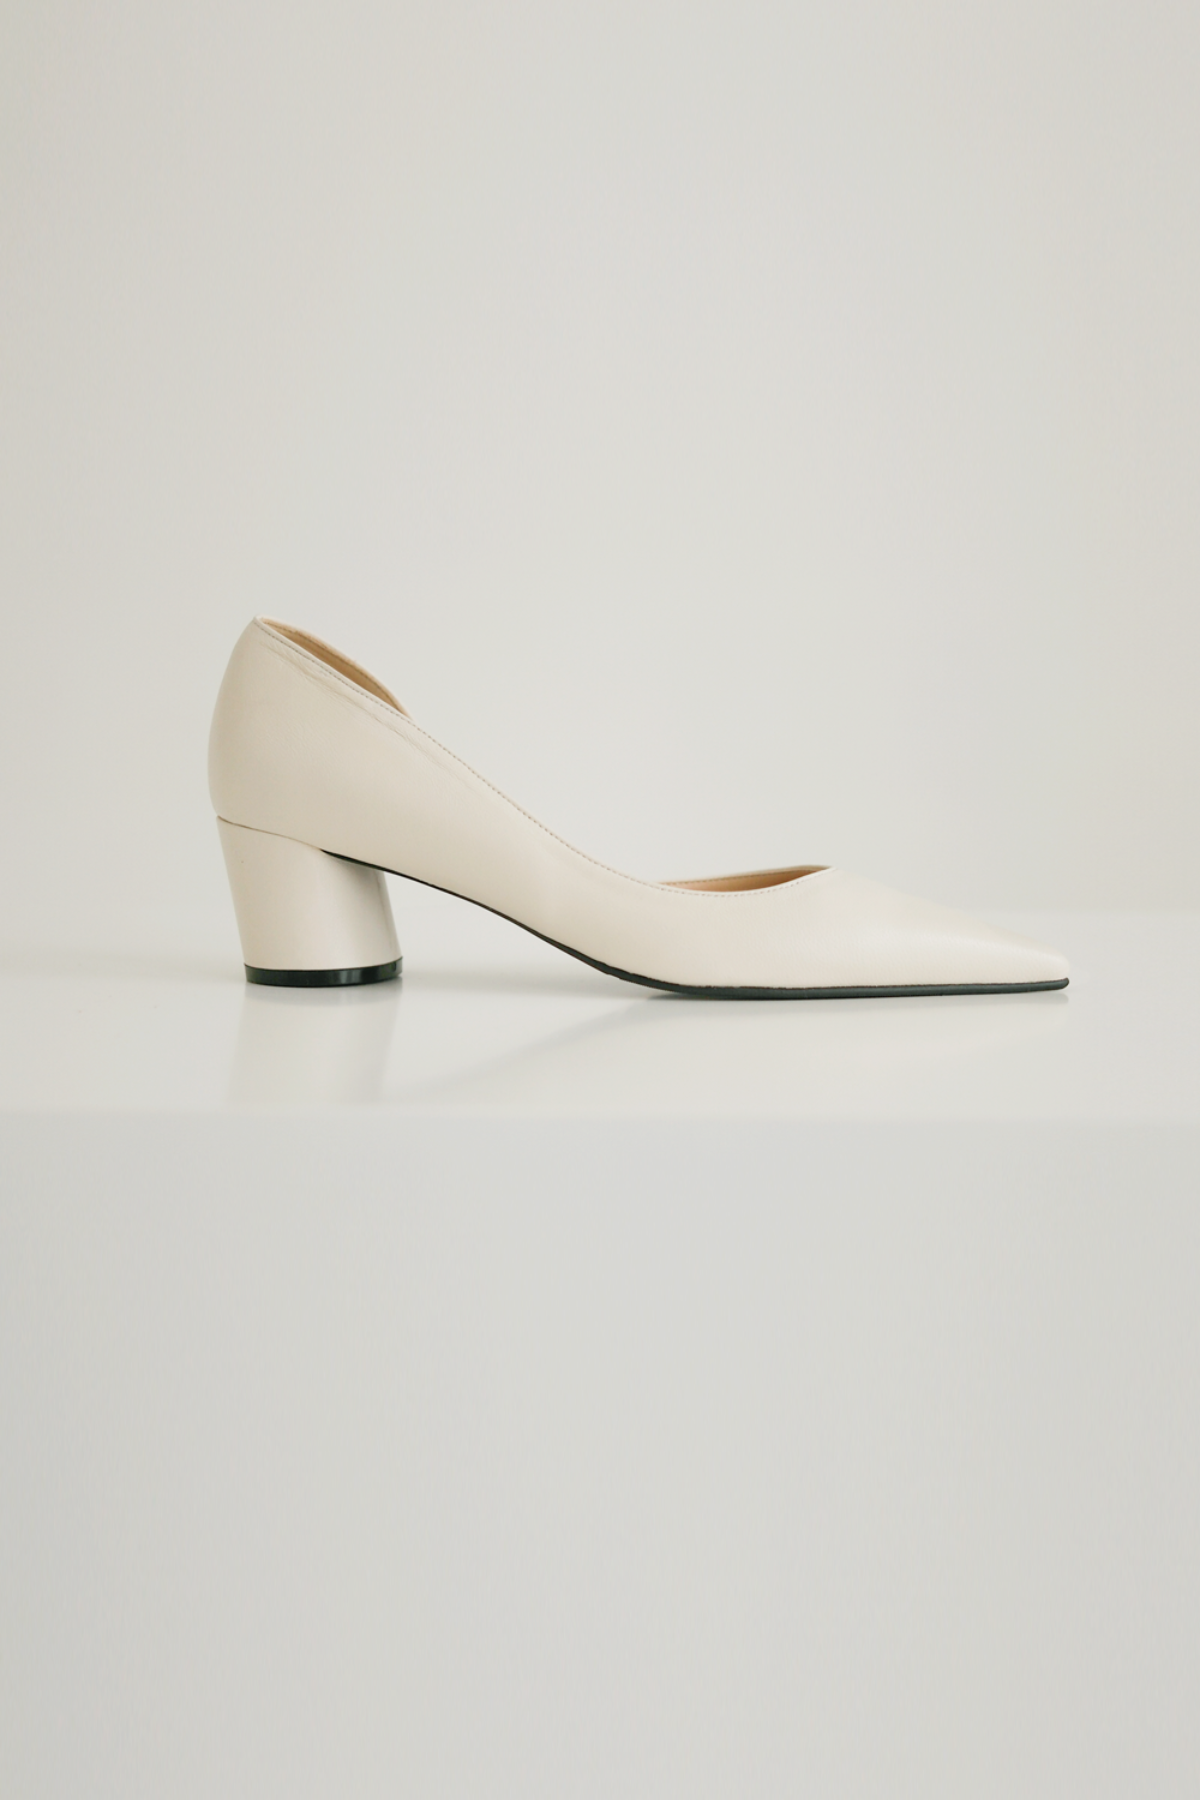 anthese pin stiletto heel, ivory